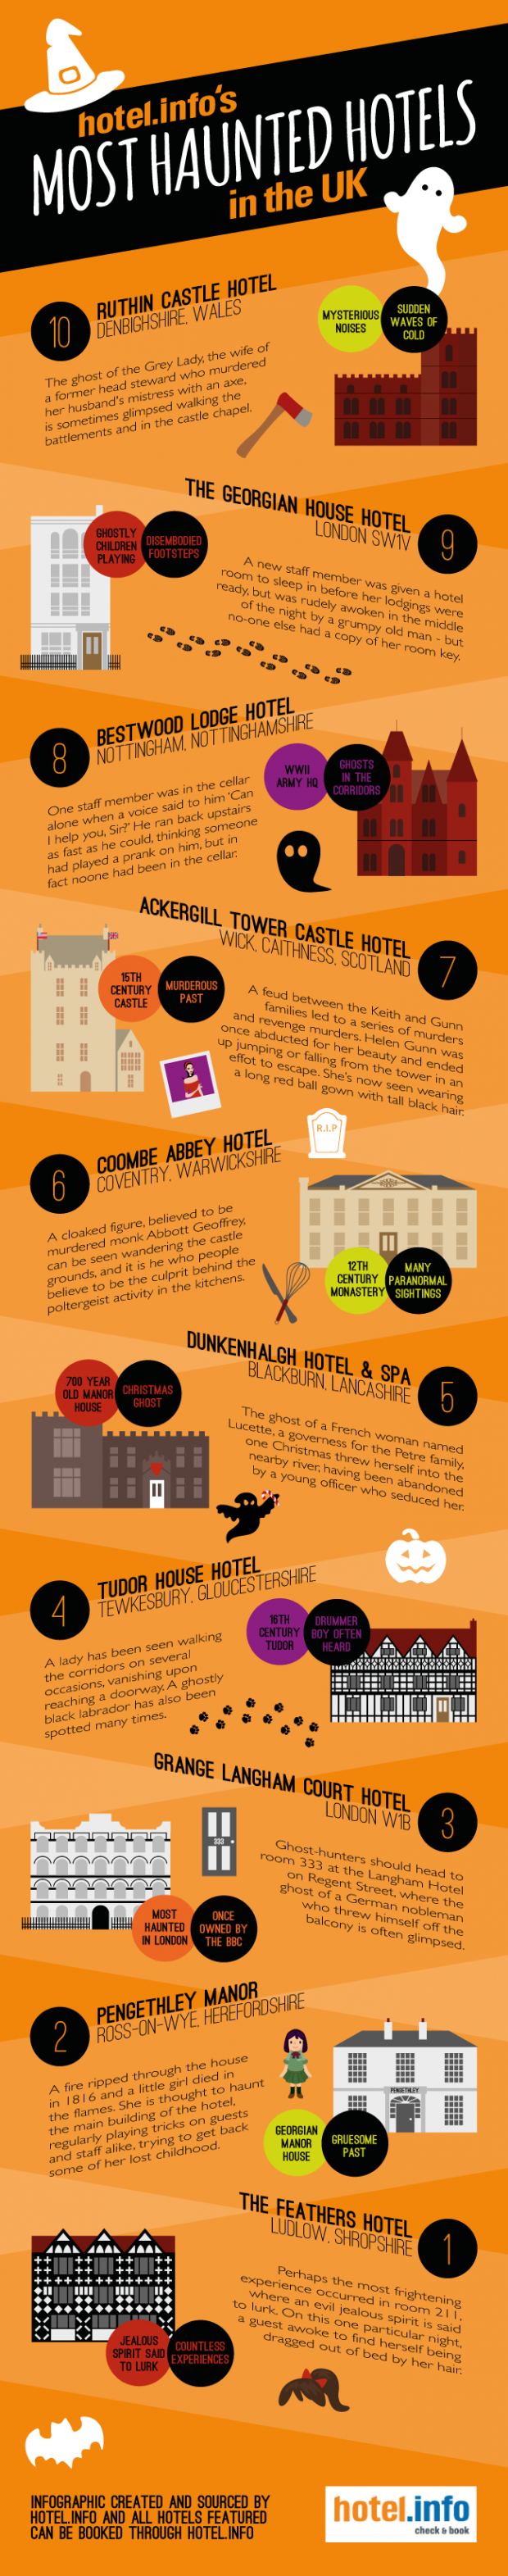 Top 10 Most Haunted Hotels In The United Kingdom - AspirantSG